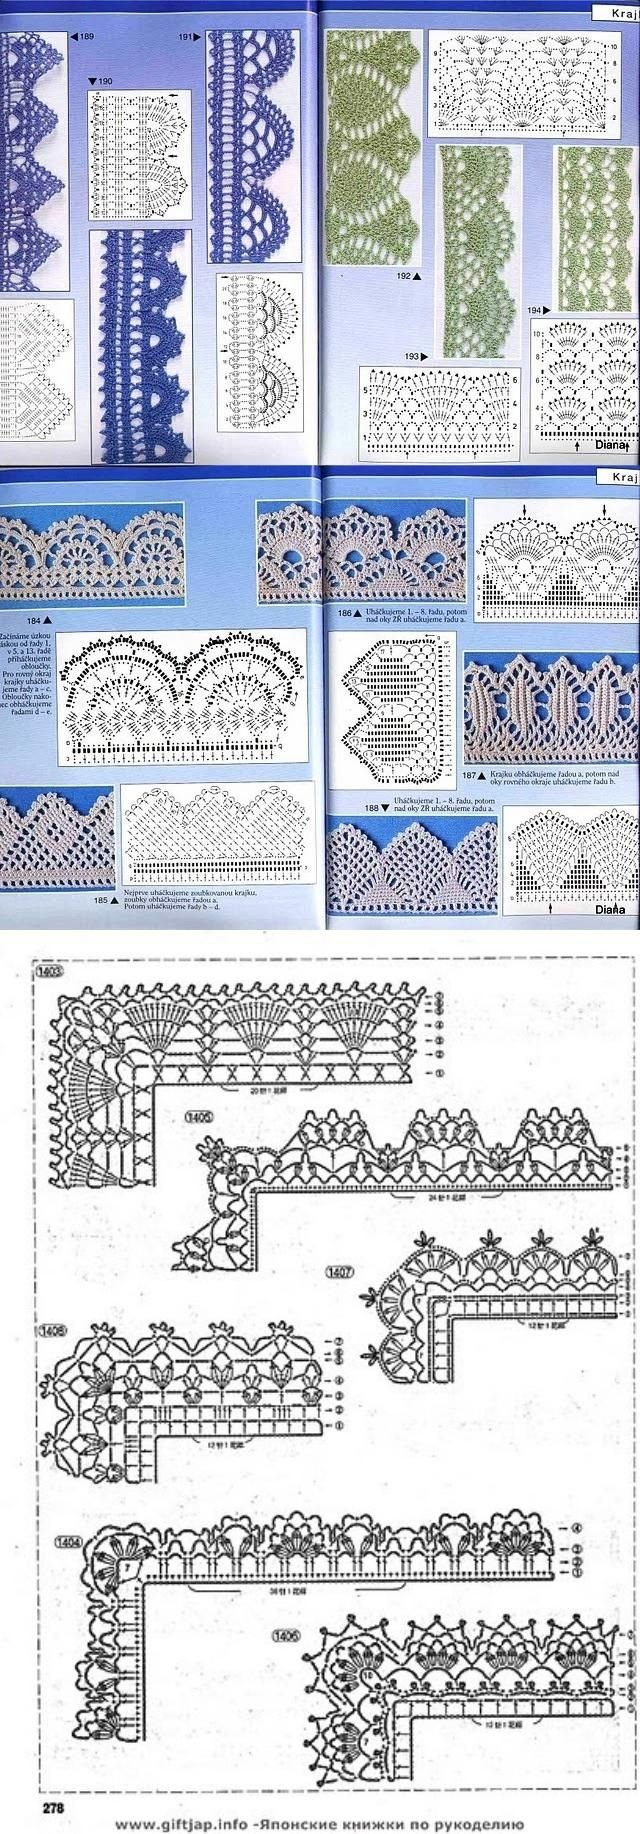 ... Crochet Edging Diagram, Crochet Edging Pattern Free, Crochet Diagram